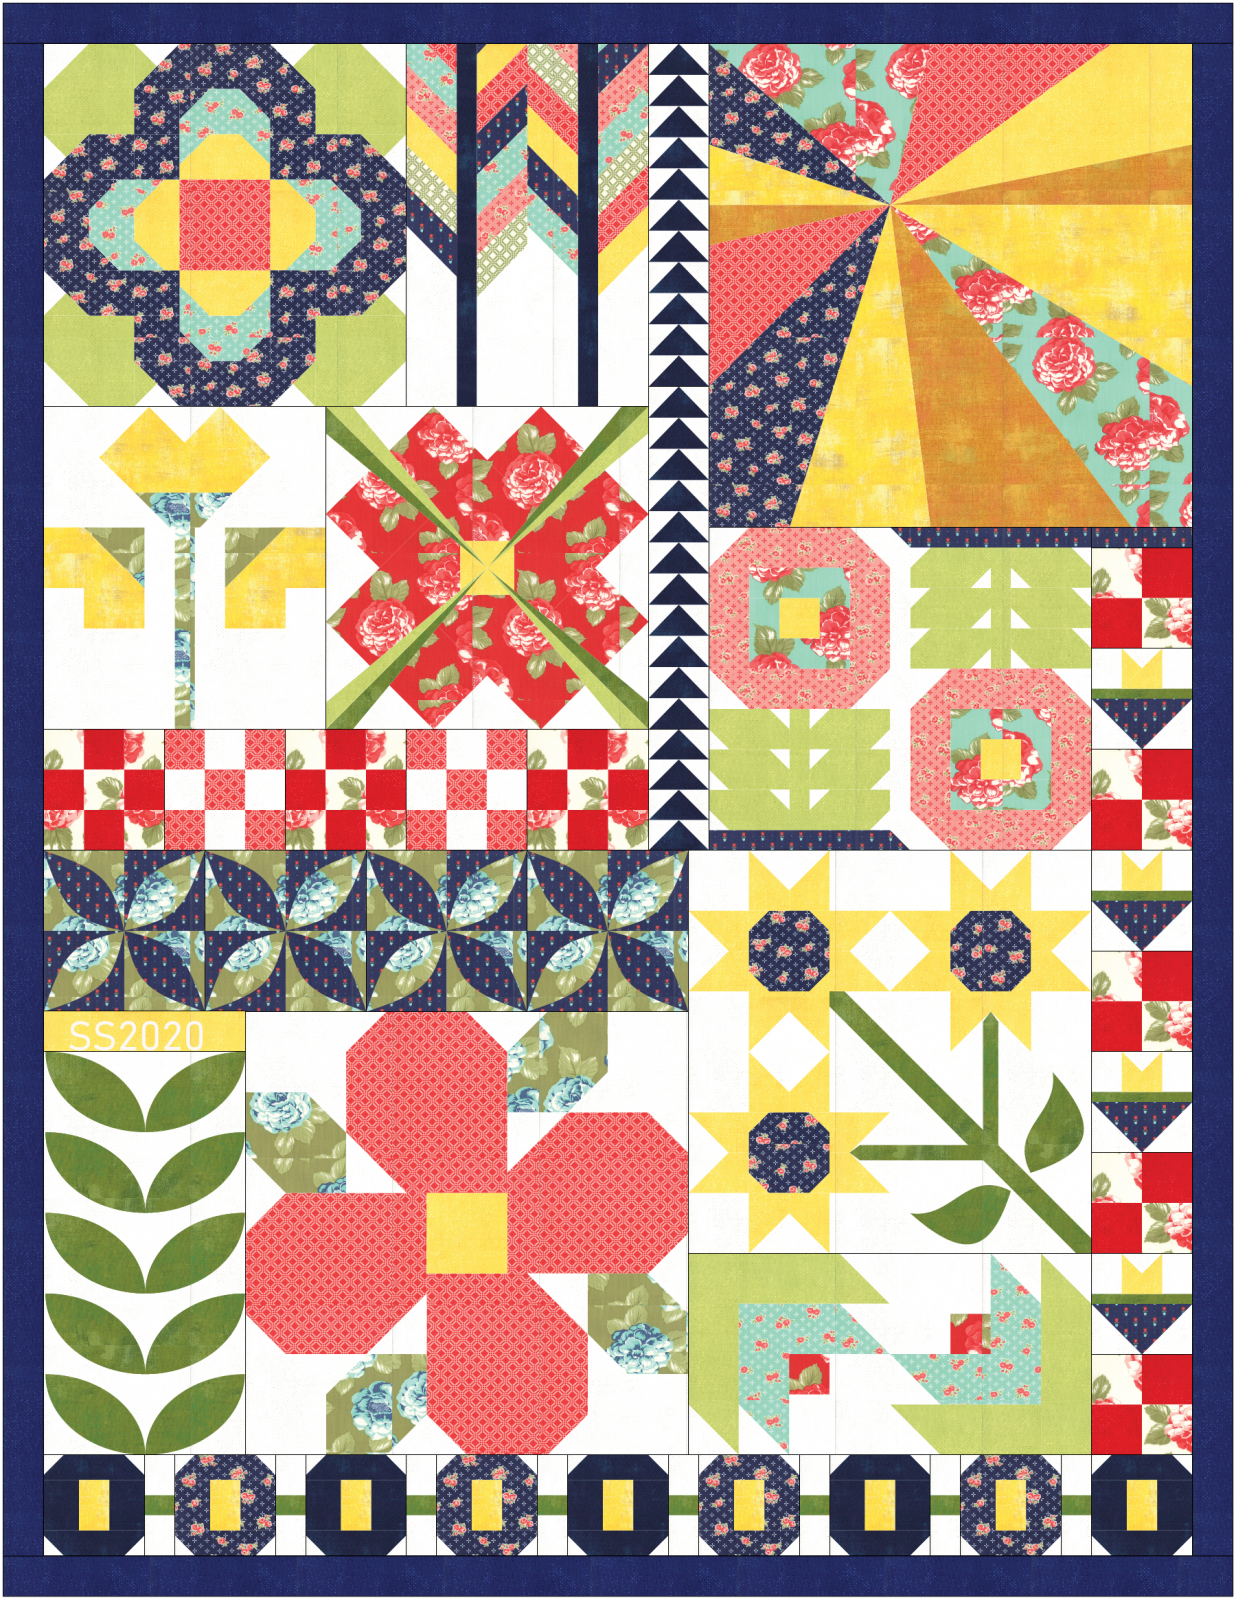 SS2020 Summer Quilt - Arrayed in Glory